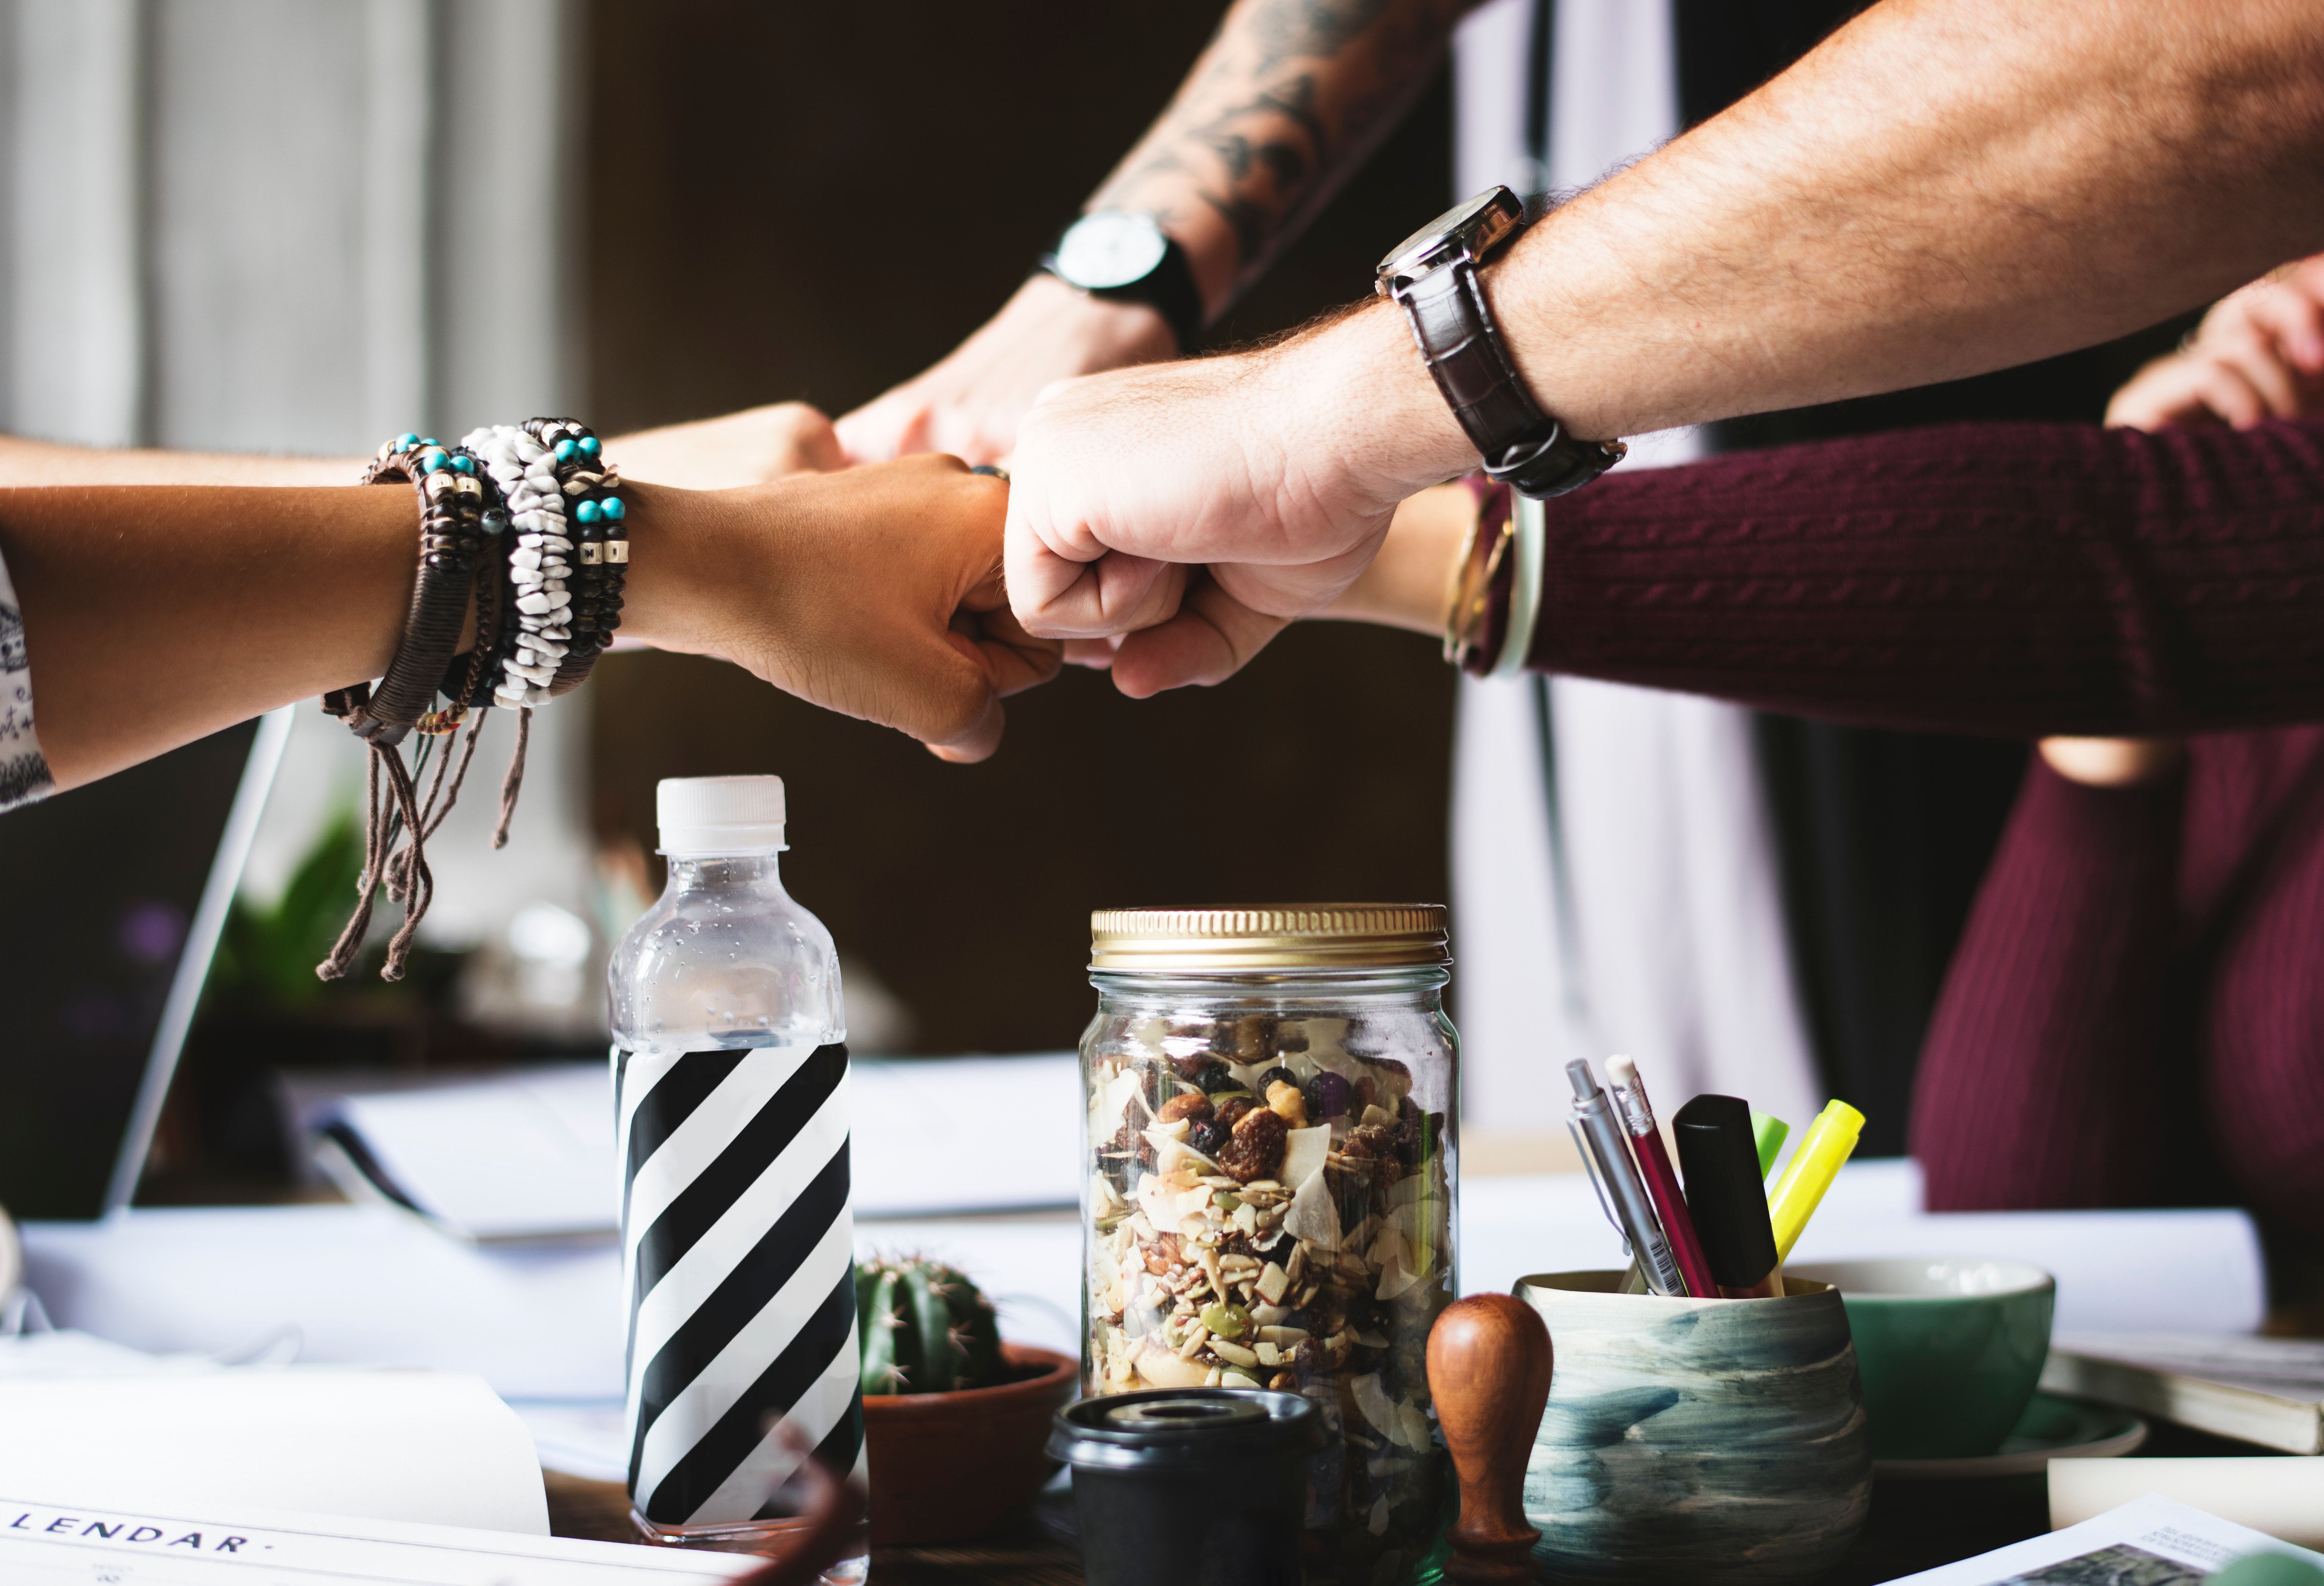 Characteristics of Effective Teams in the Workplace